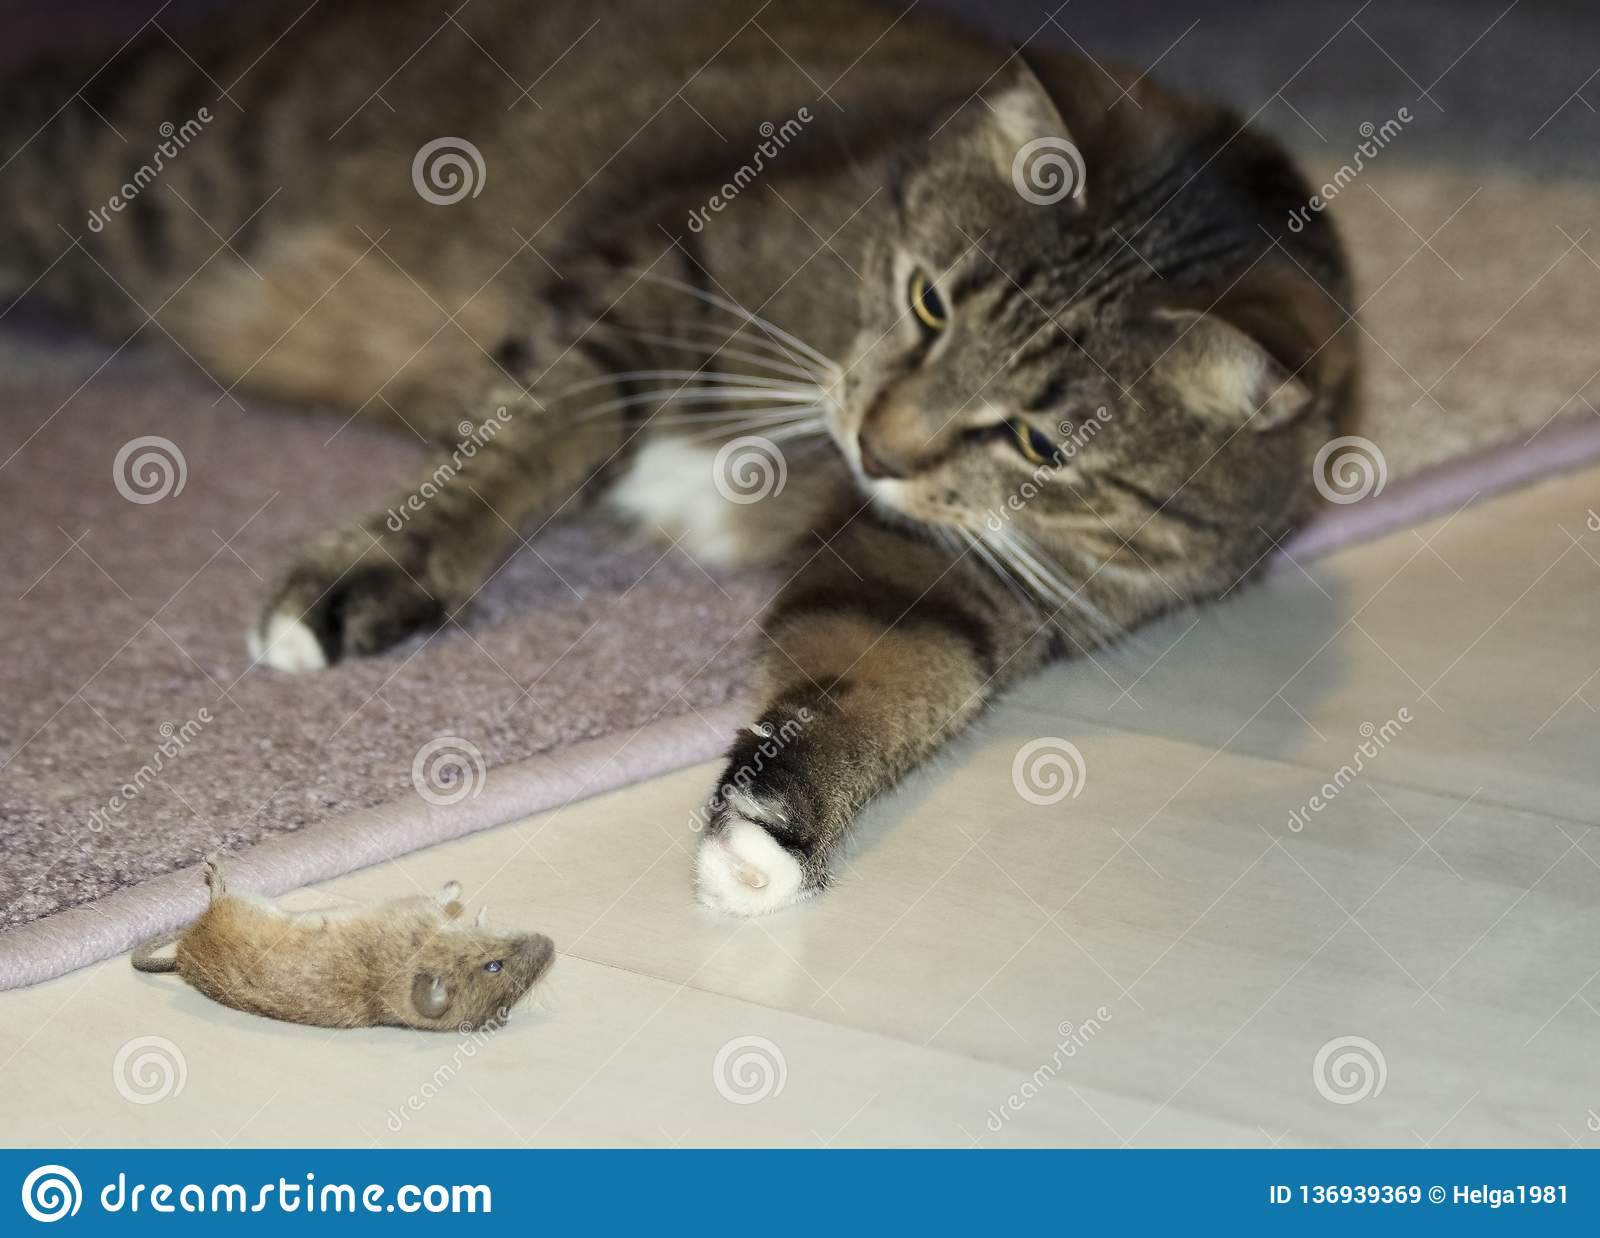 Funny beautiful cat playing with a mouse. Selective focus. Focus on mouse